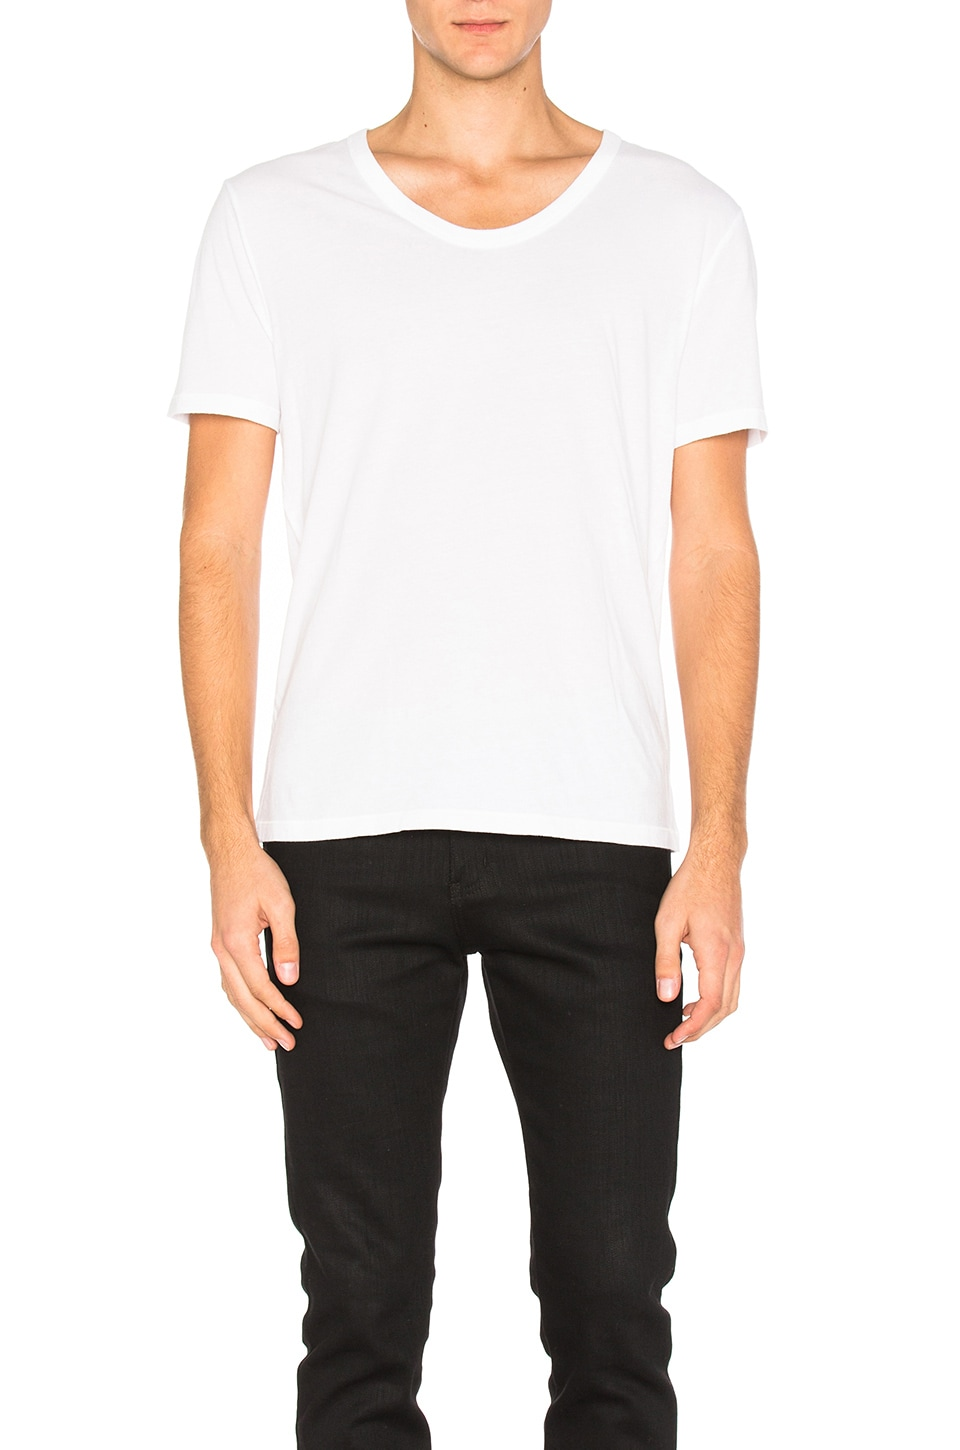 Classic Low Neck Tee by T by Alexander Wang